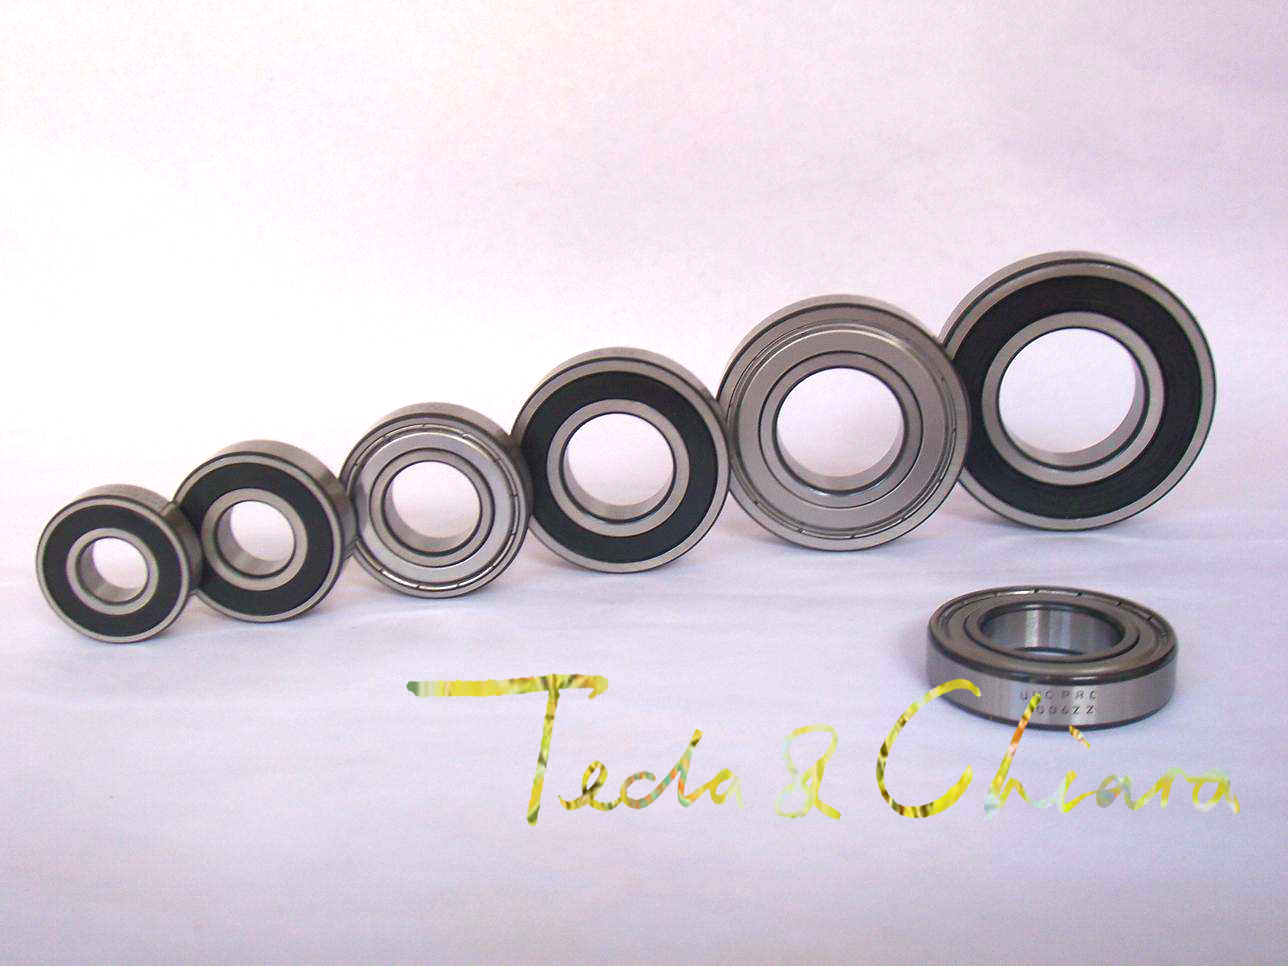 6801 6801ZZ 6801RS 6801-2Z 6801Z 6801-2RS ZZ RS RZ 2RZ Deep Groove Ball Bearings 12 x 21 x 5mm High Quality 604 604zz 604rs 604 2z 604z 604 2rs zz rs rz 2rz deep groove ball bearings 4 x 12 x 4mm high quality